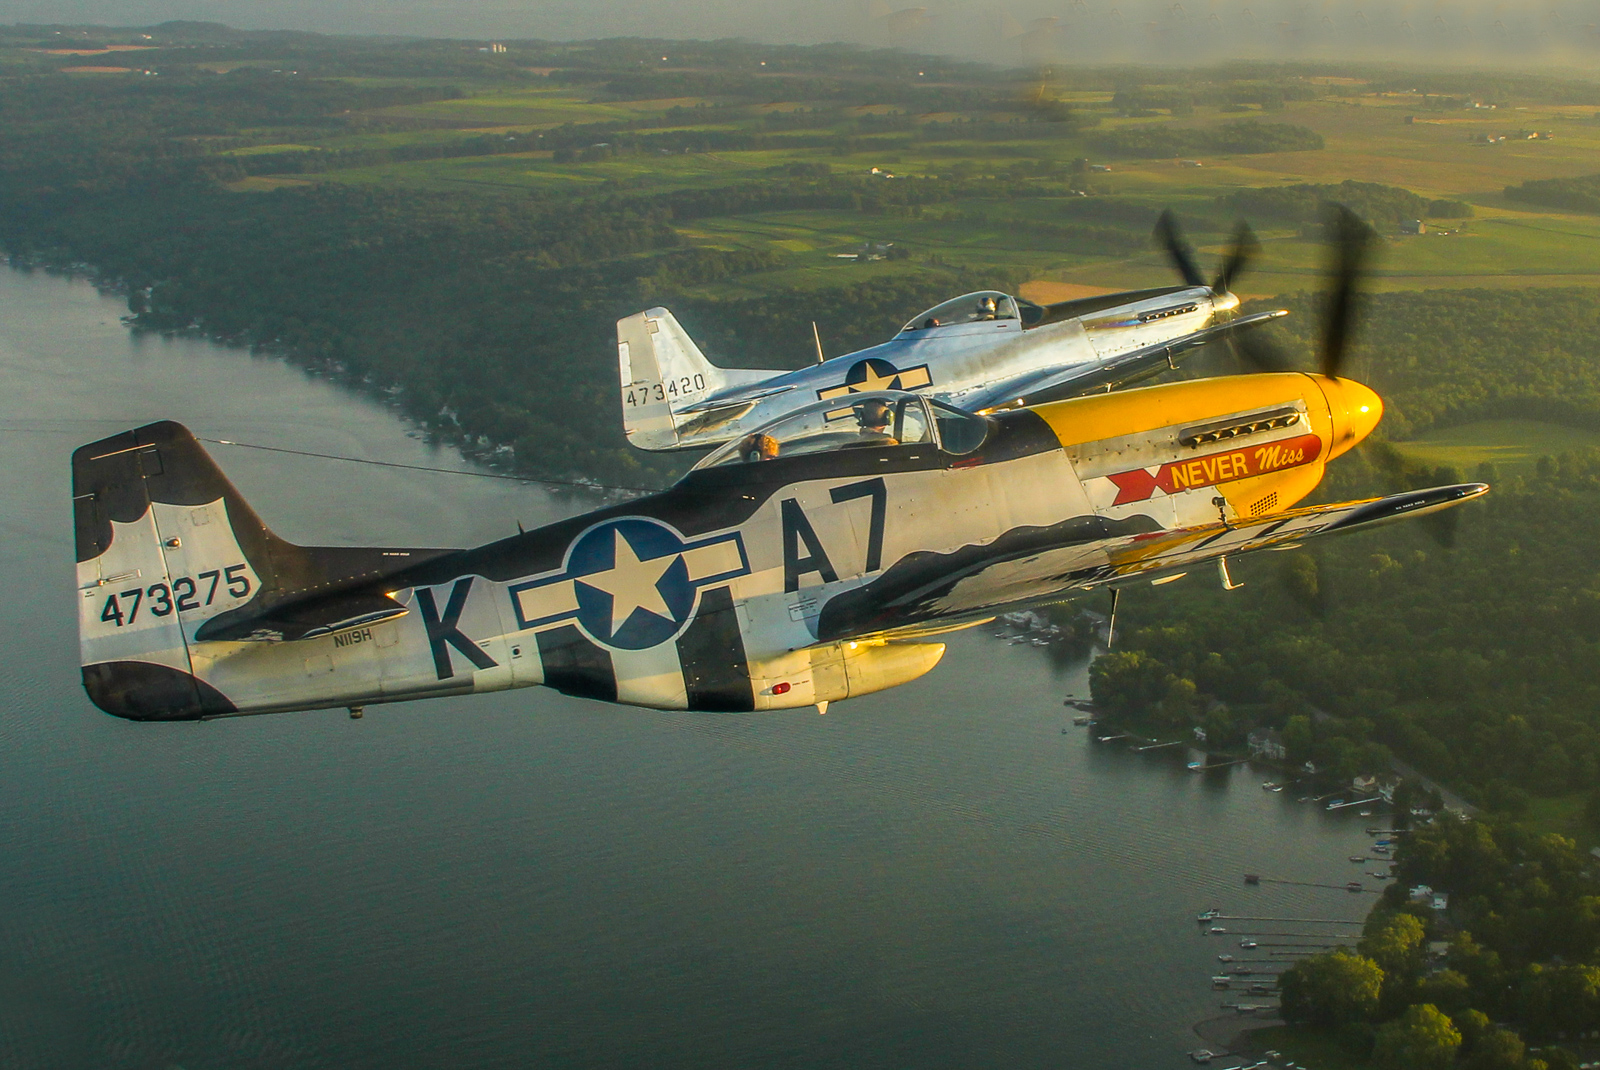 A stunning air-to-air of Mustangs over the Genesee Valley with Mark Murphy flying 'Never Miss' and Andrew McKenna in his factory-fresh P-51D. (photo by Tom Pawlesh)